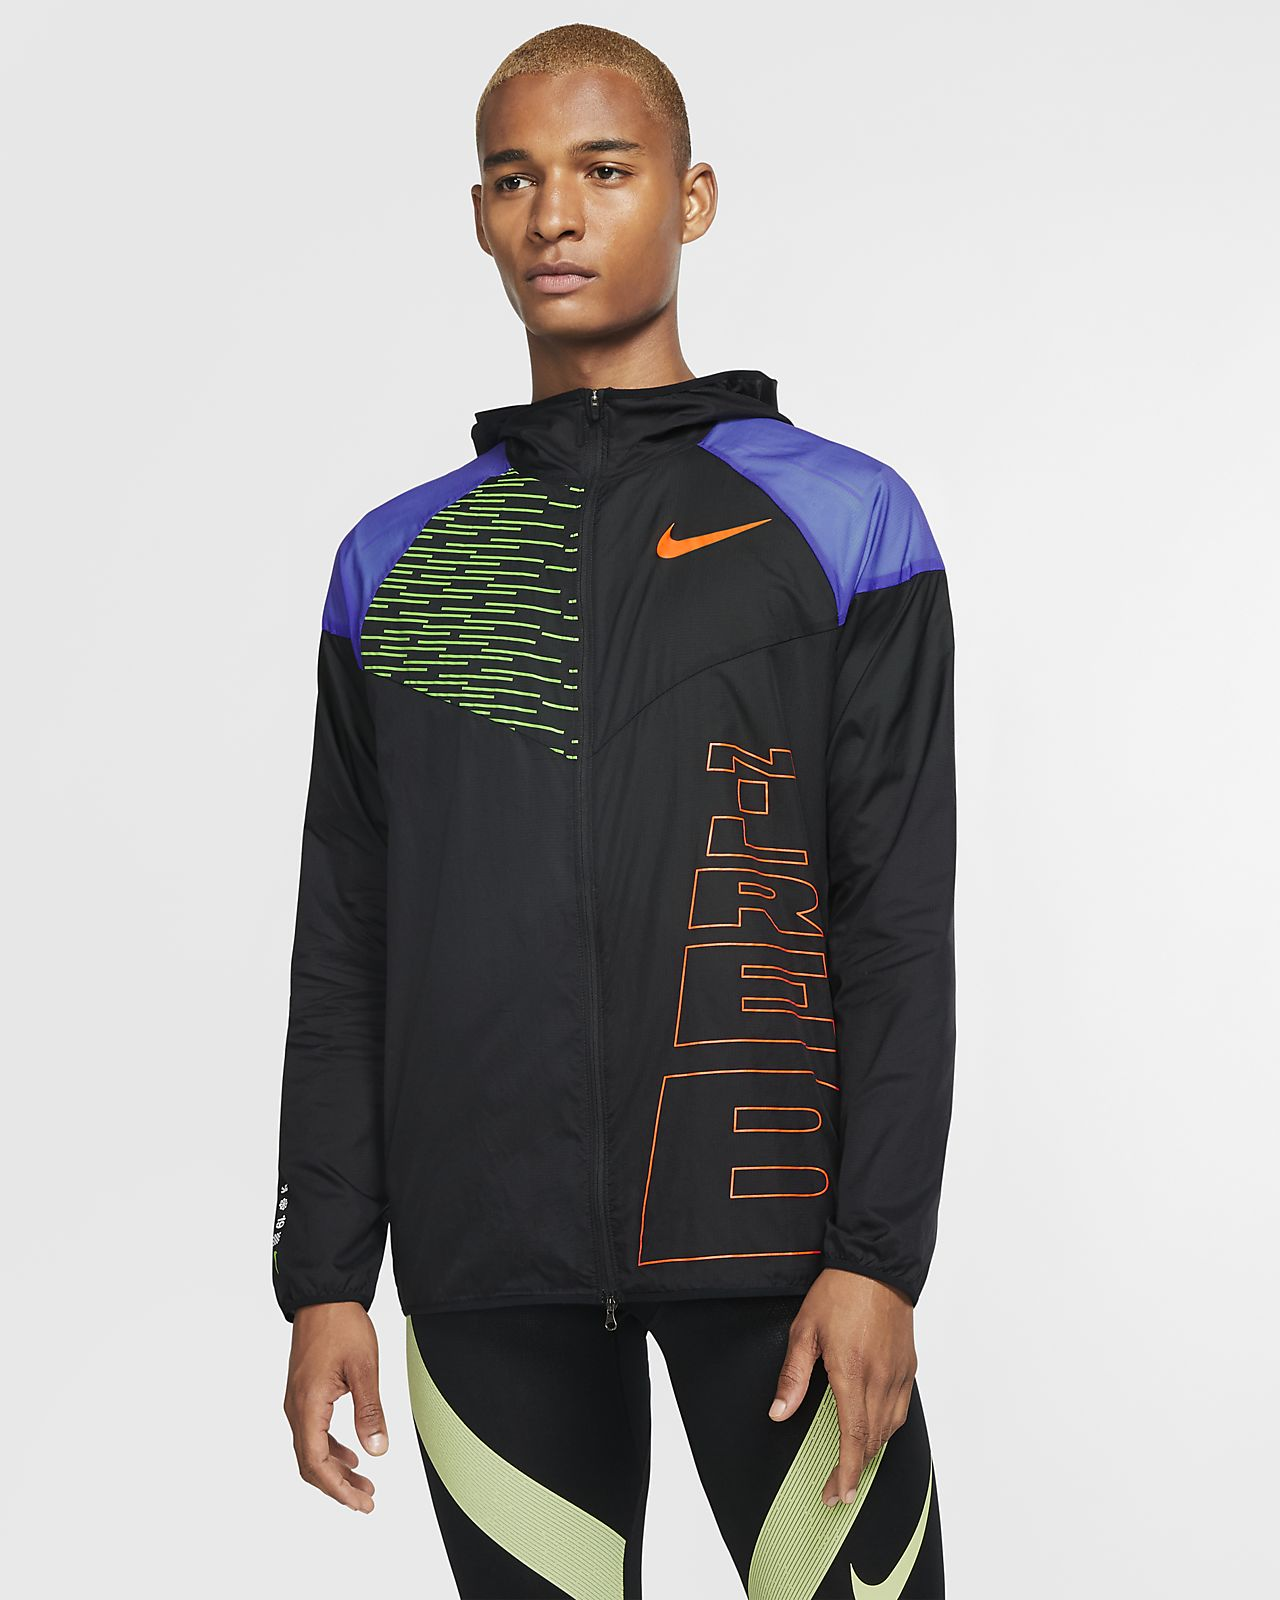 Nike Running Berlin Men's Windrunner Jacket